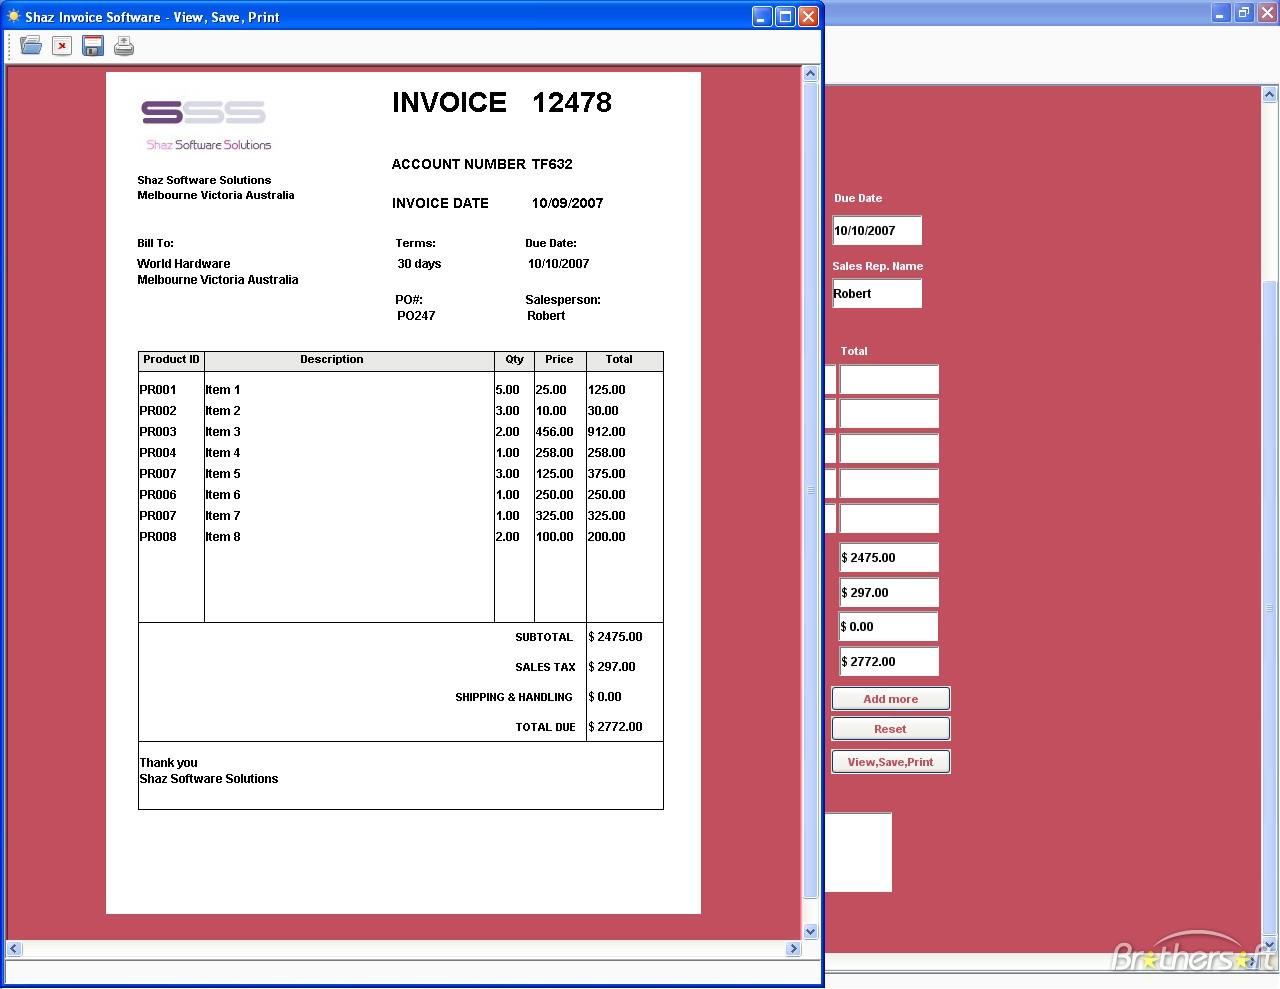 business invoices invcswanndvrnet outstanding bill invoice invoice software for small business invoice business invoices